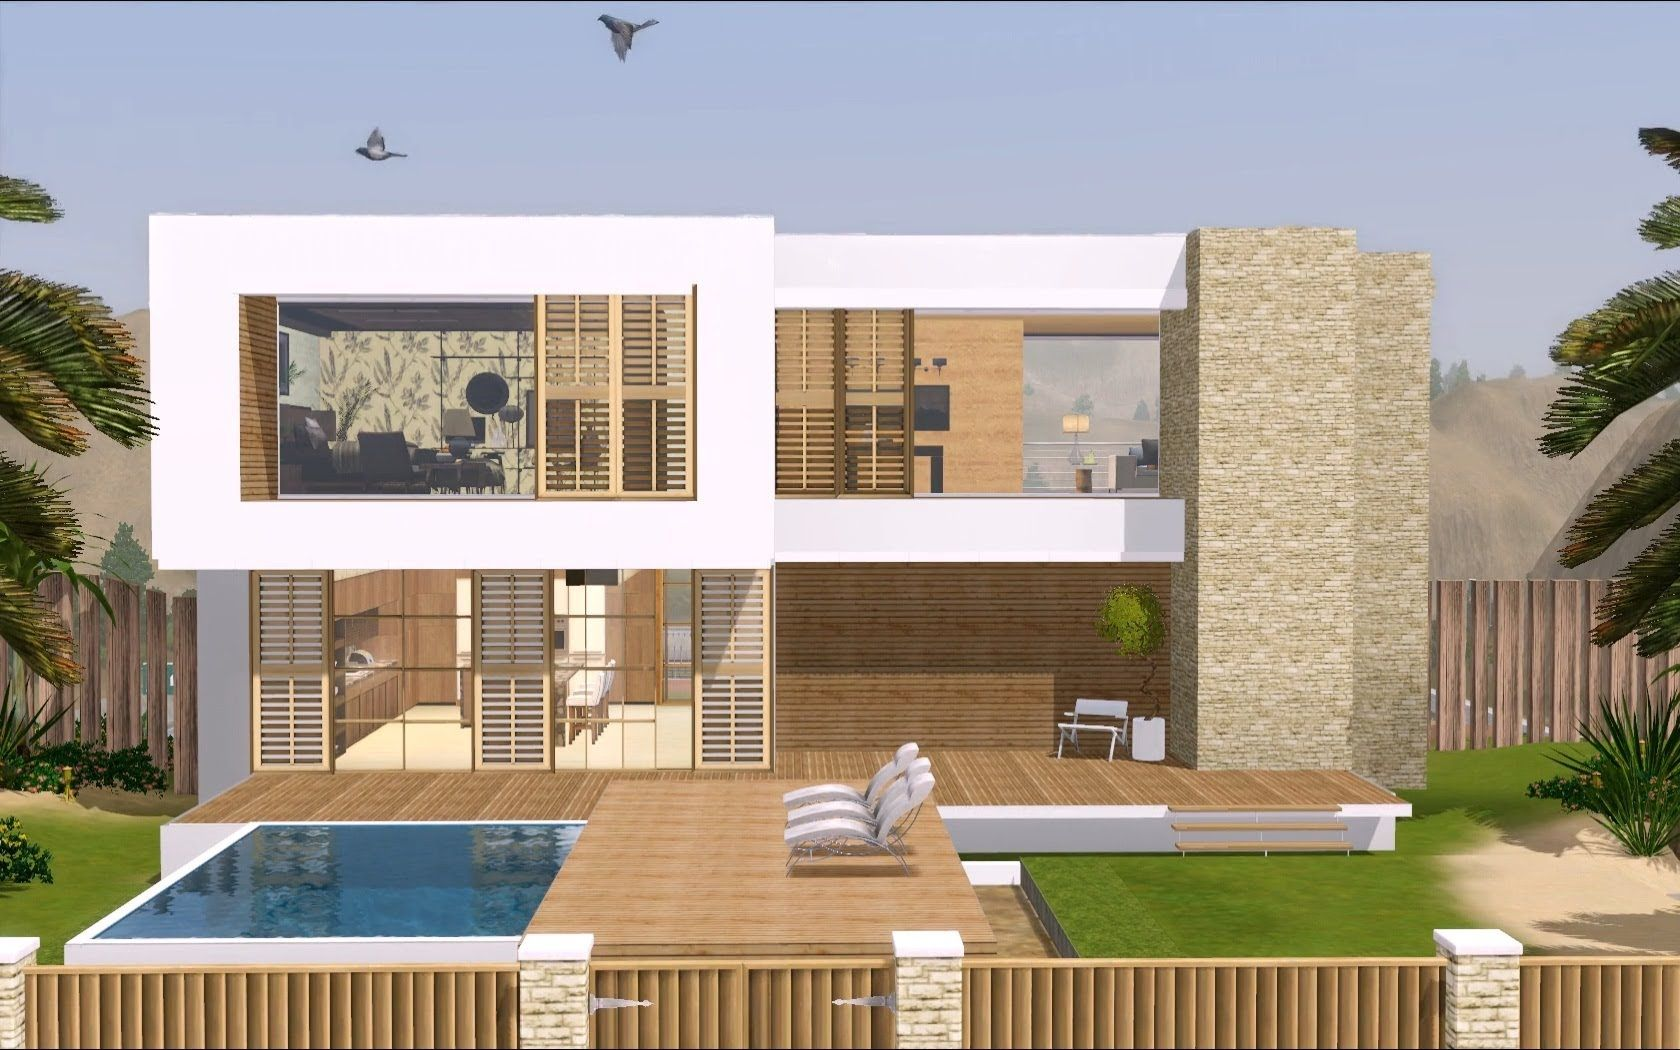 The Sims 3 Modern Hollywood House 1080p Sims House Sims 4 House Plans Modern House Plans